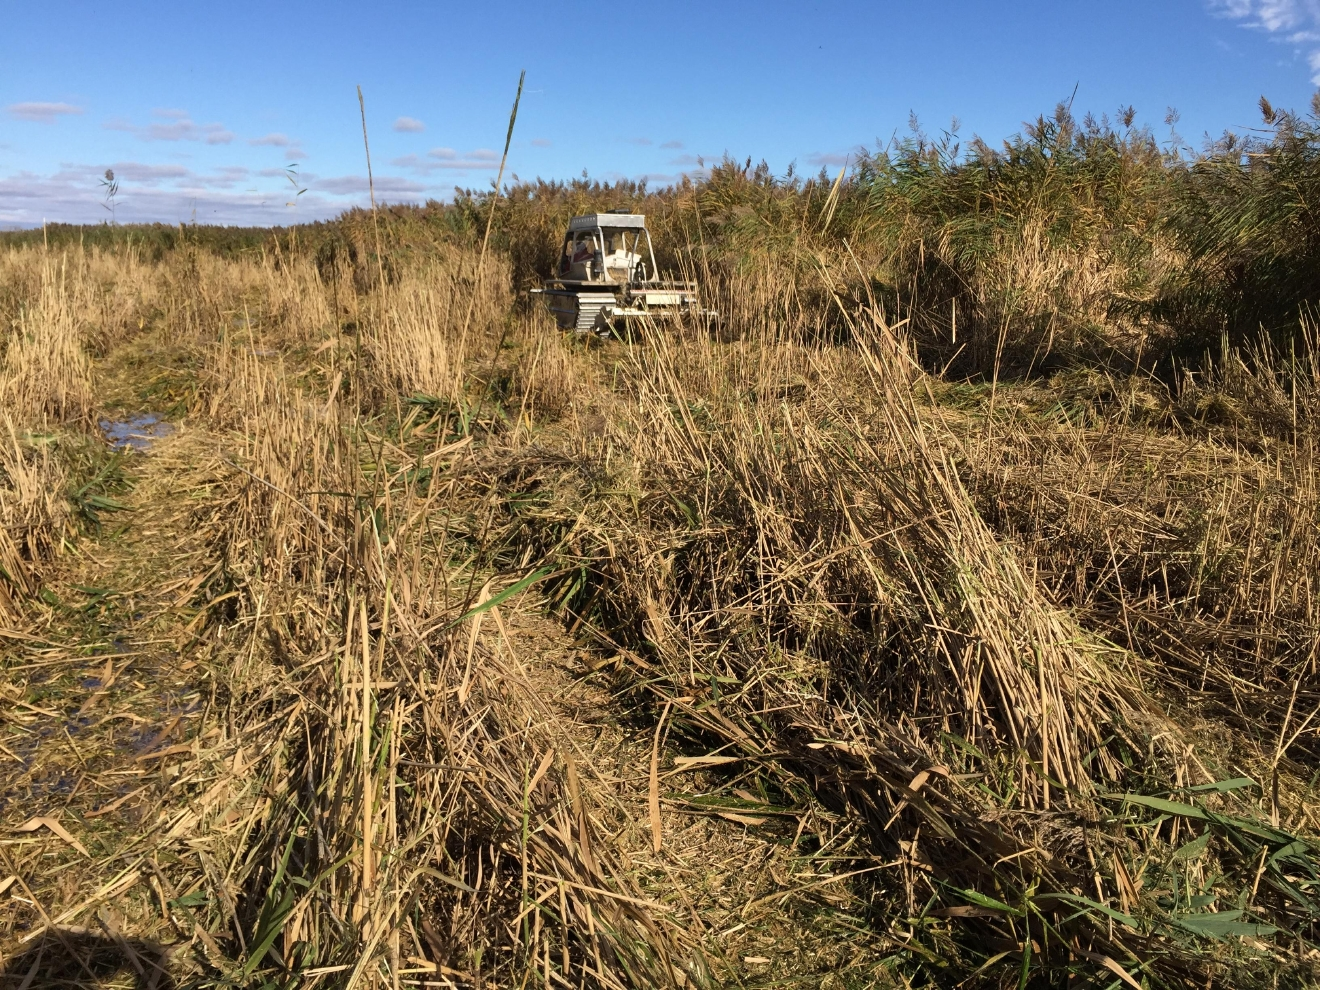 Phragmites being cut by Marsh Master all terrain vehicle in Green Bay, October 20, 2016 (WLUK/Eric Peterson)